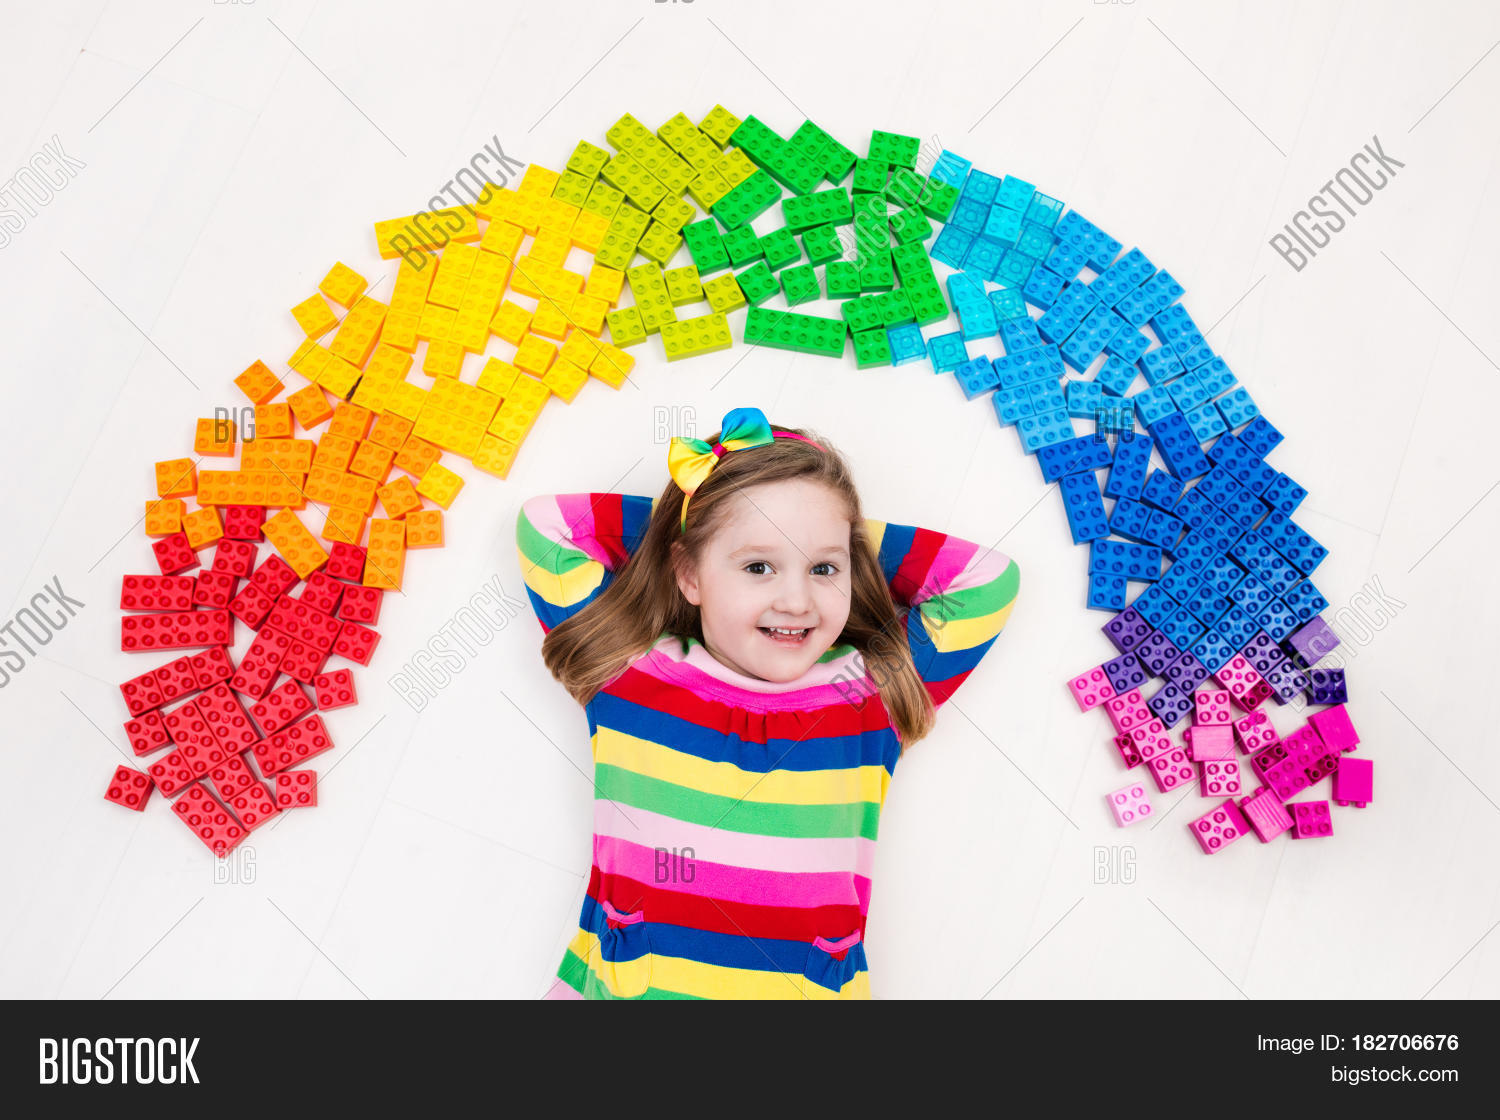 8dbae1fd9f1e Funny little girl playing with colorful rainbow plastic blocks. Kids play  create and learn colors